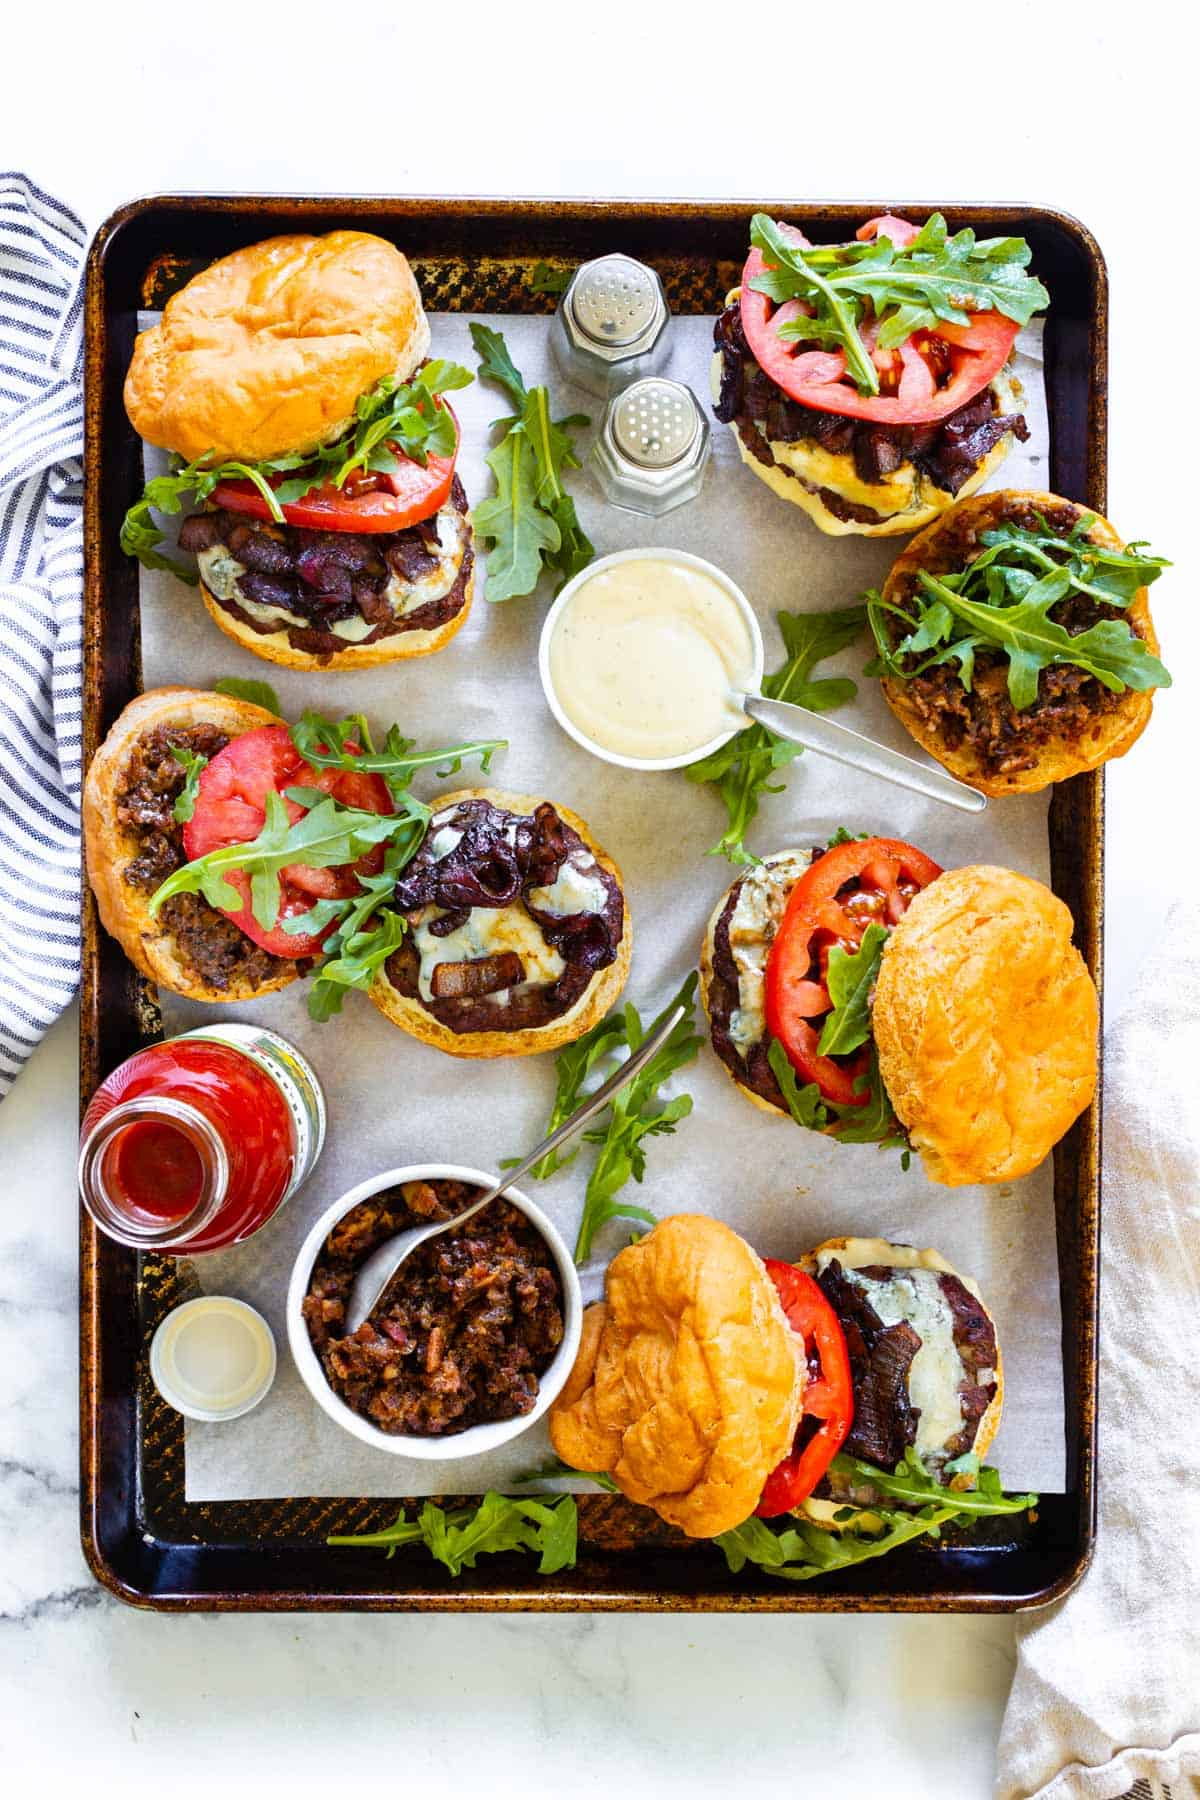 A tray loaded with bacon blue cheese burgers and small side dishes with roasted garlic aioli and bacon jam. A salt and pepper shaker and a ketchup bottle also accompany the burgers.